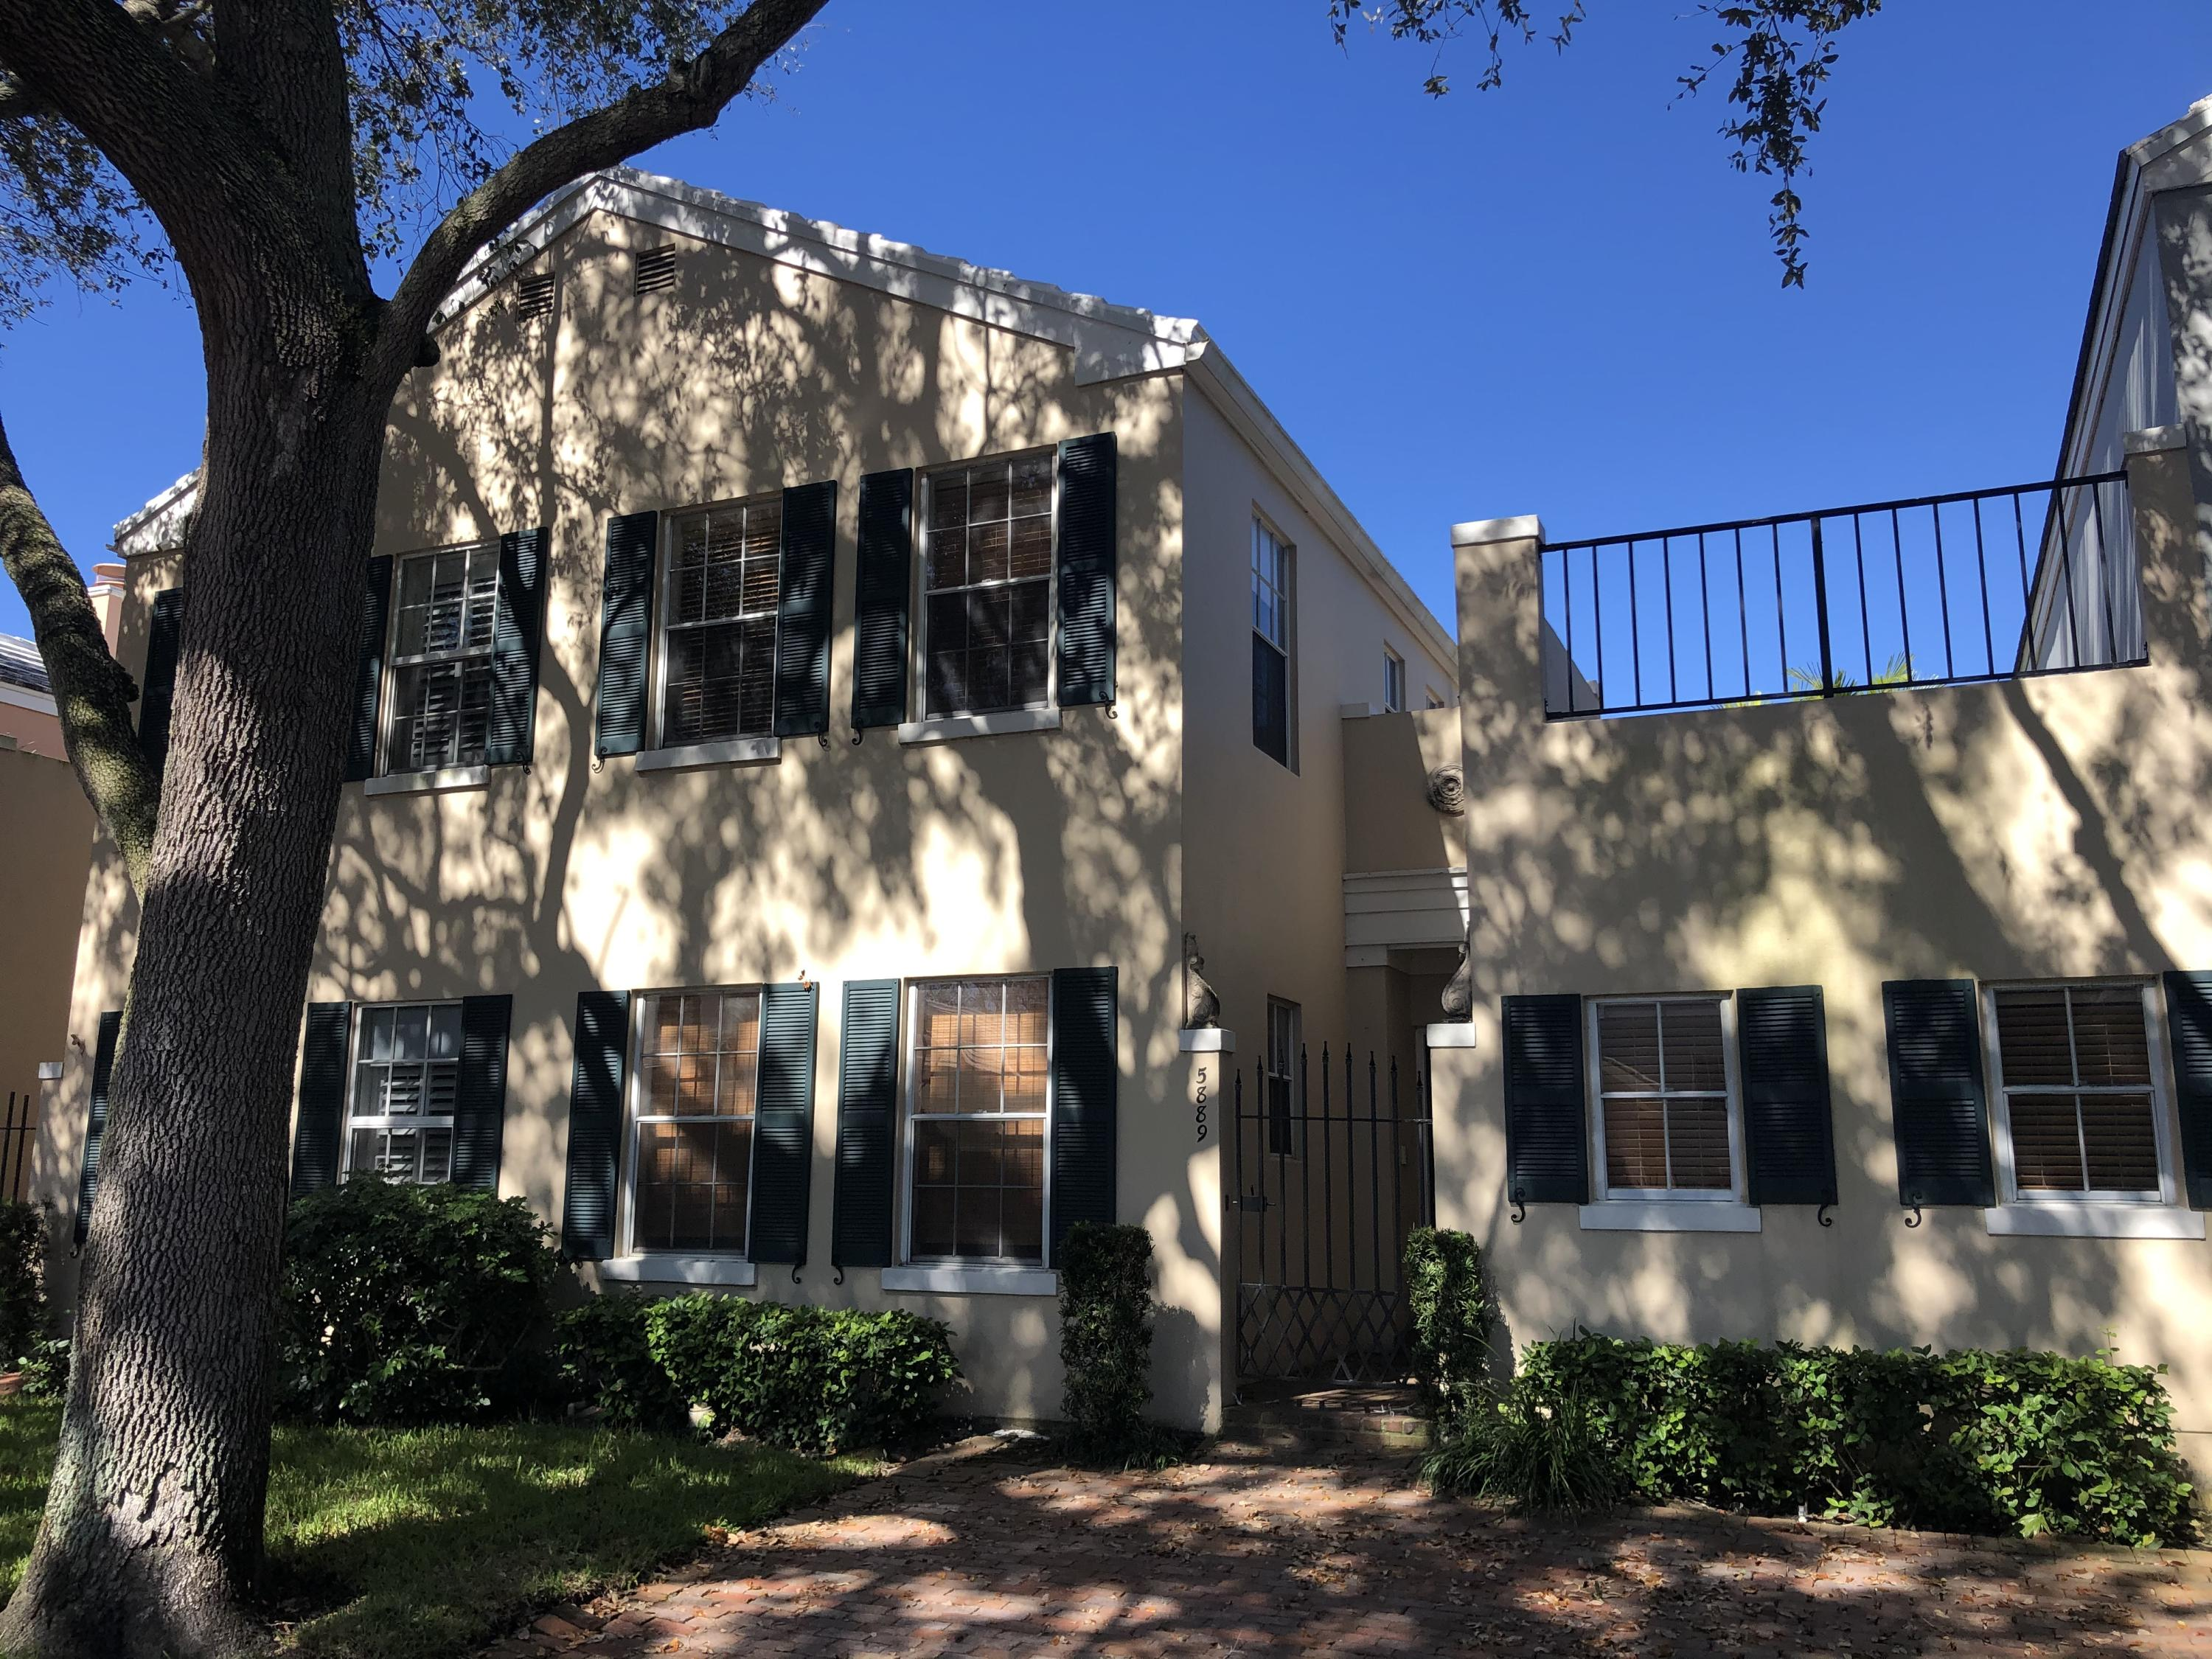 5889 Bartram Street,Boca Raton,Florida 33433,2 Bedrooms Bedrooms,2 BathroomsBathrooms,Townhouse,Bartram,RX-10597368